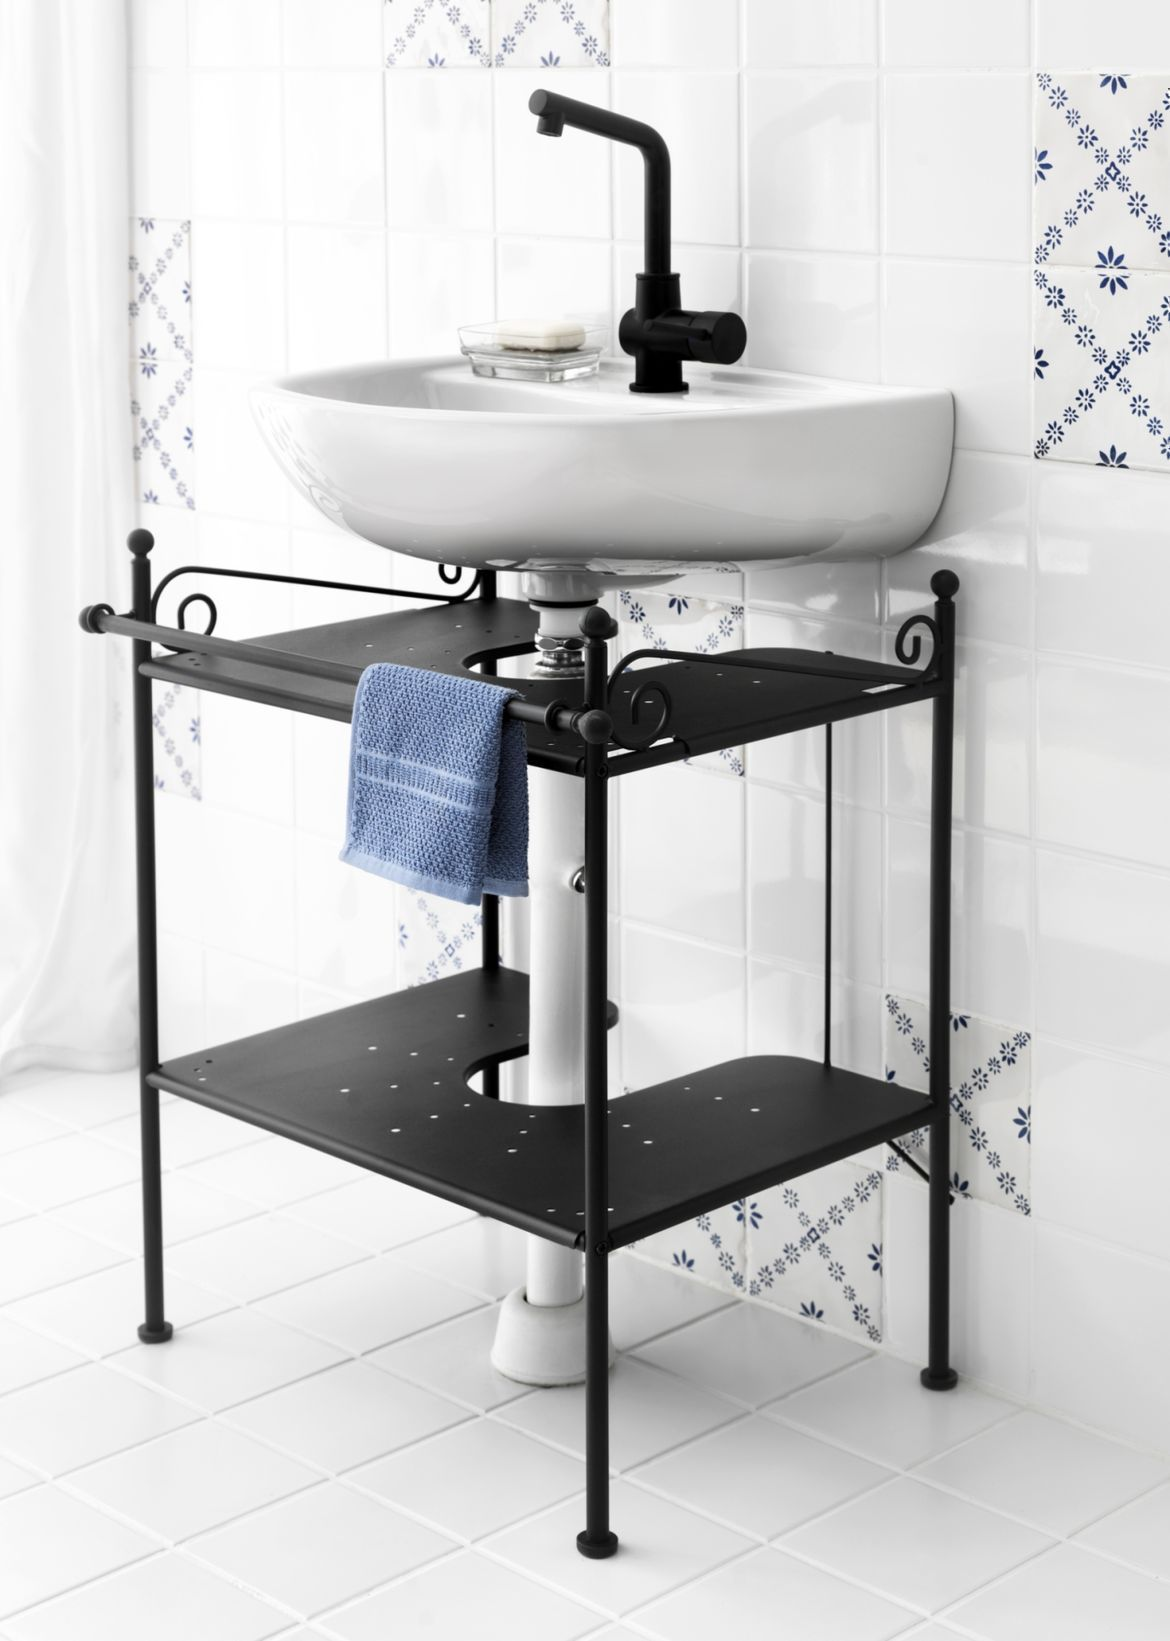 ikea storage tray for wash basin in toilet